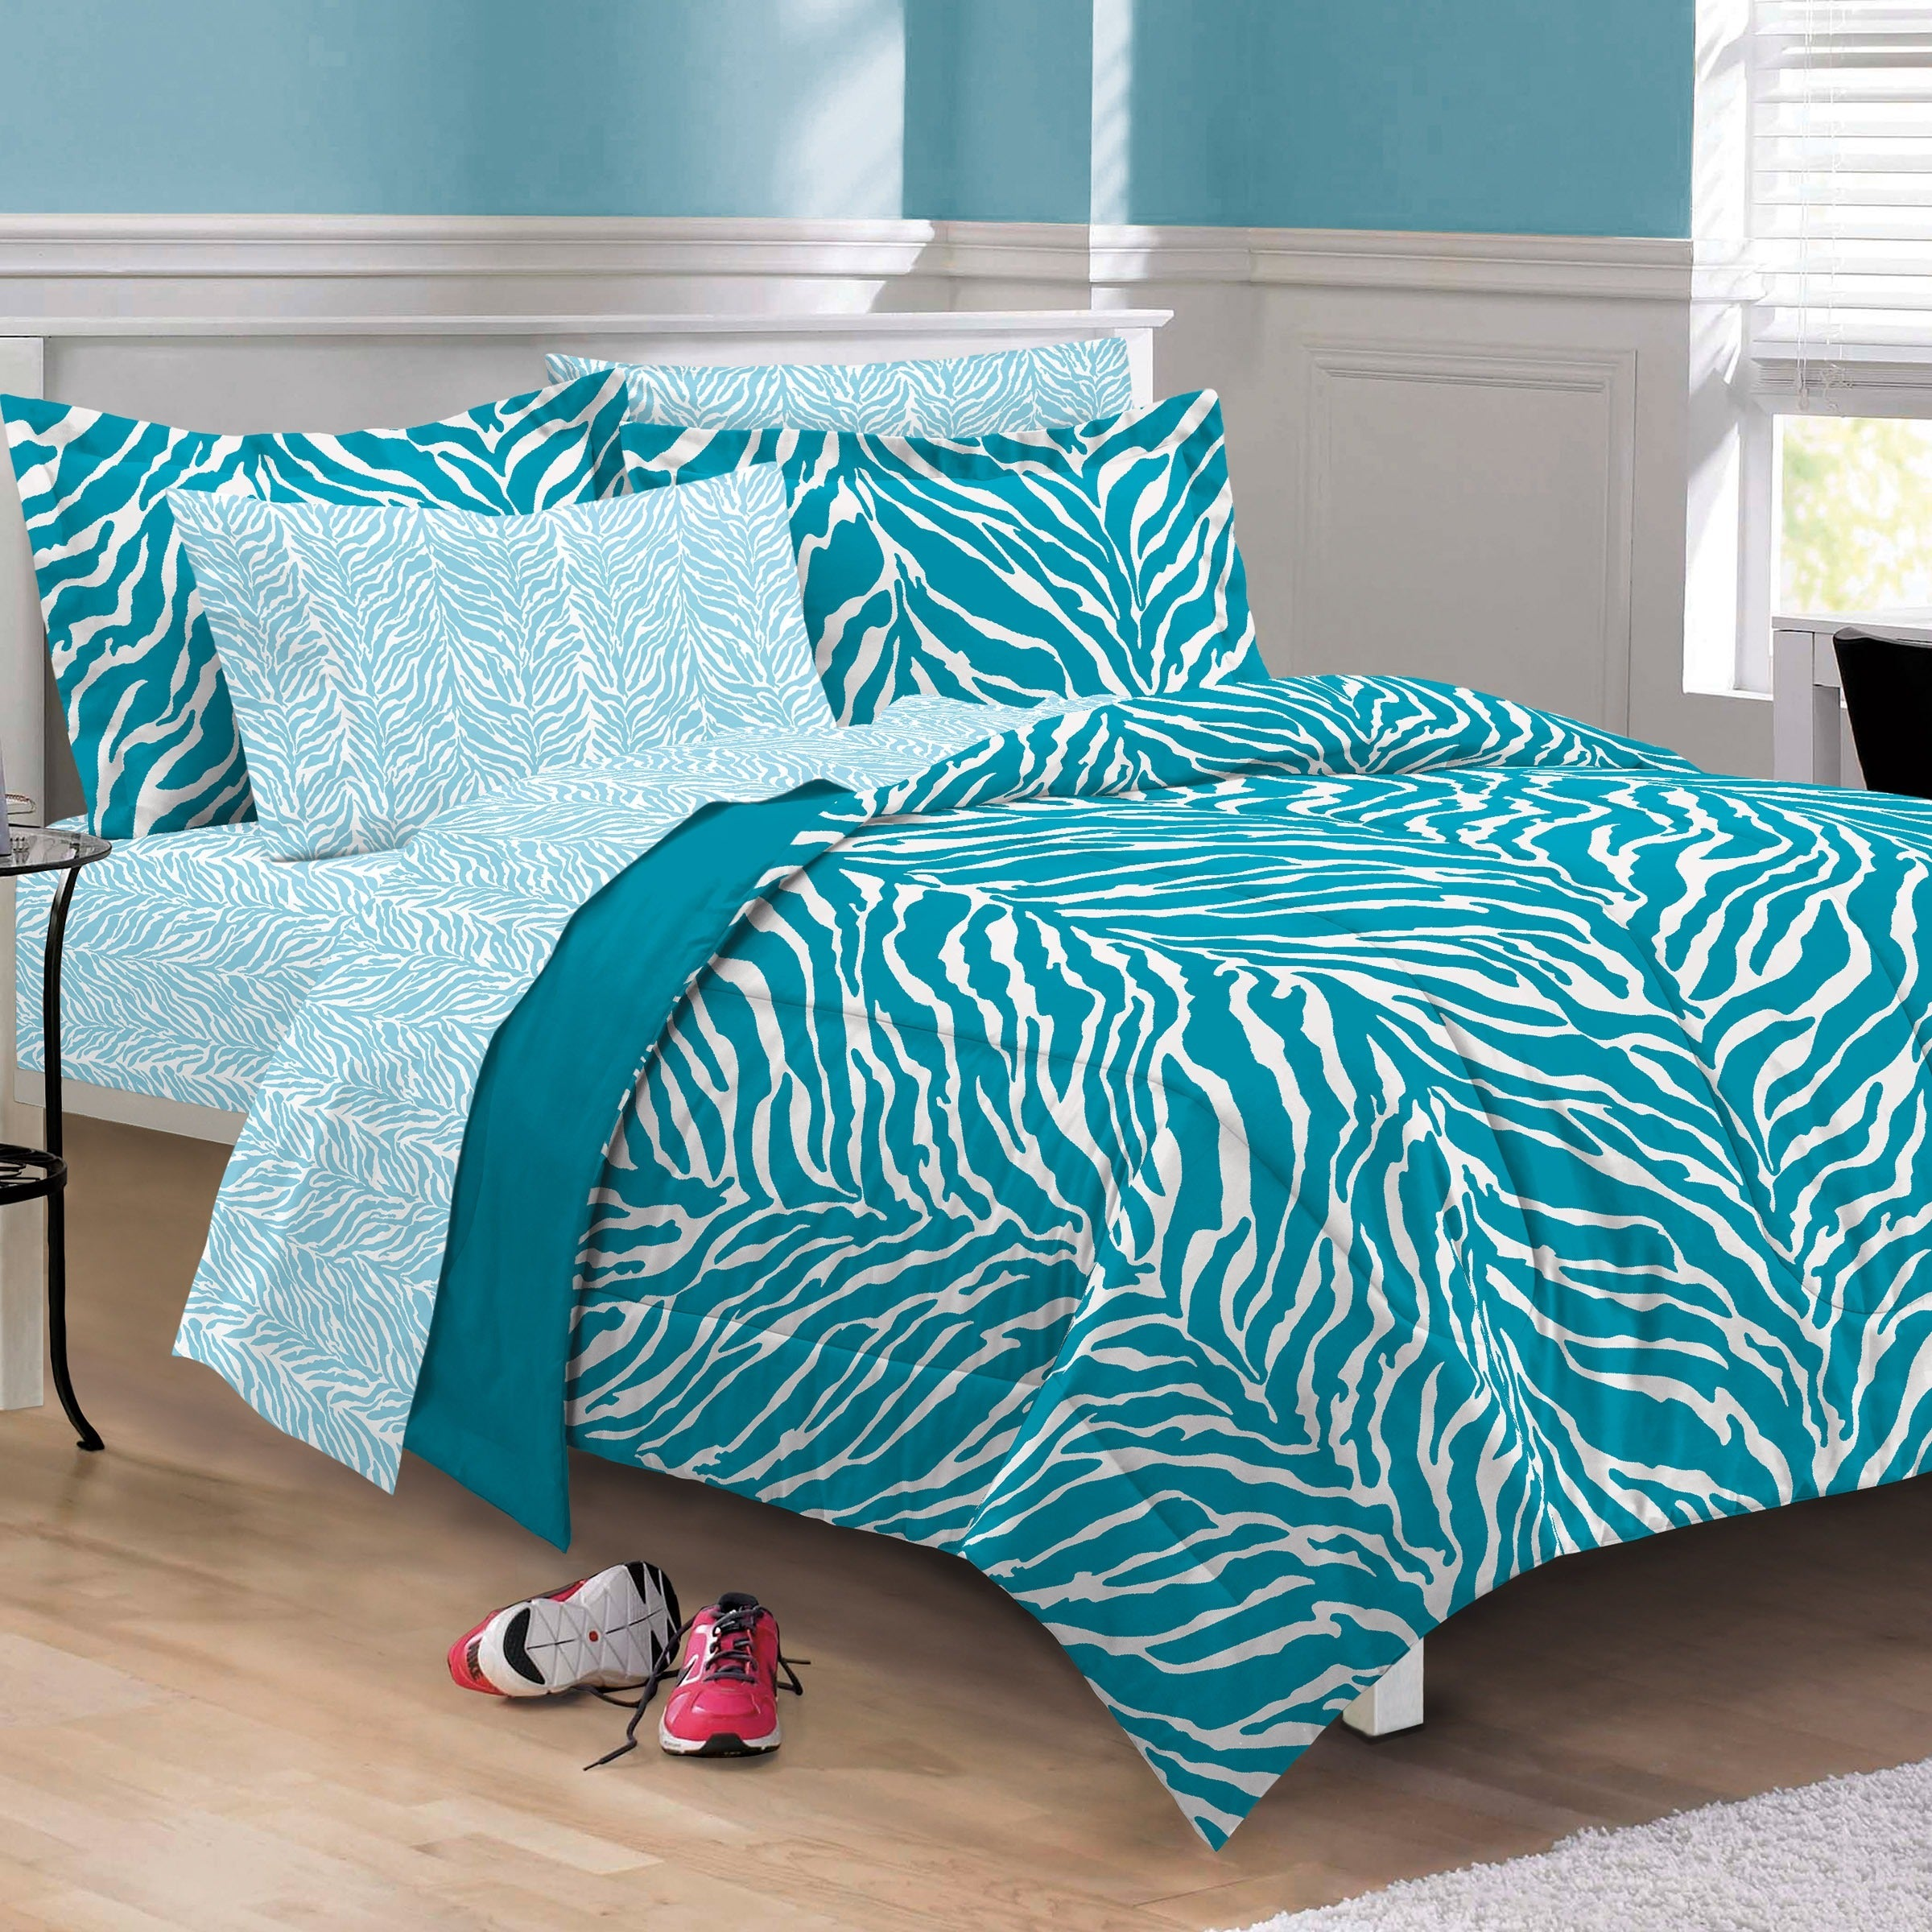 Zebra Microfiber 6 piece Bed in a Bag with Sheet Set Free Shipping